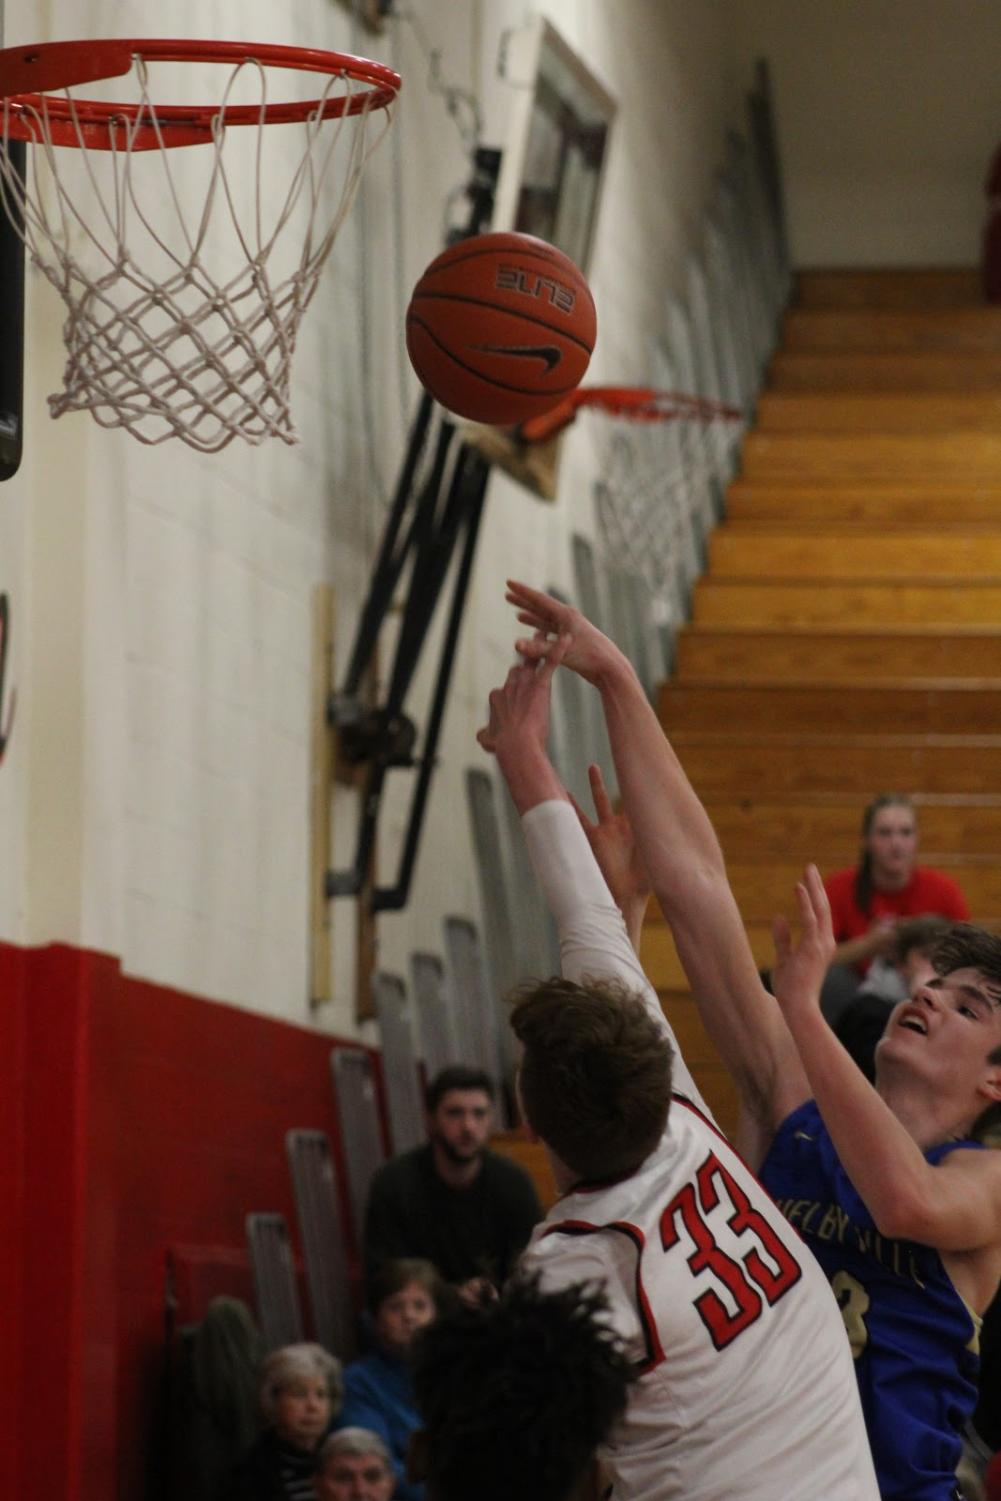 A CCCHS Red Raider successfully blocks a shot from Shelbyville Central.